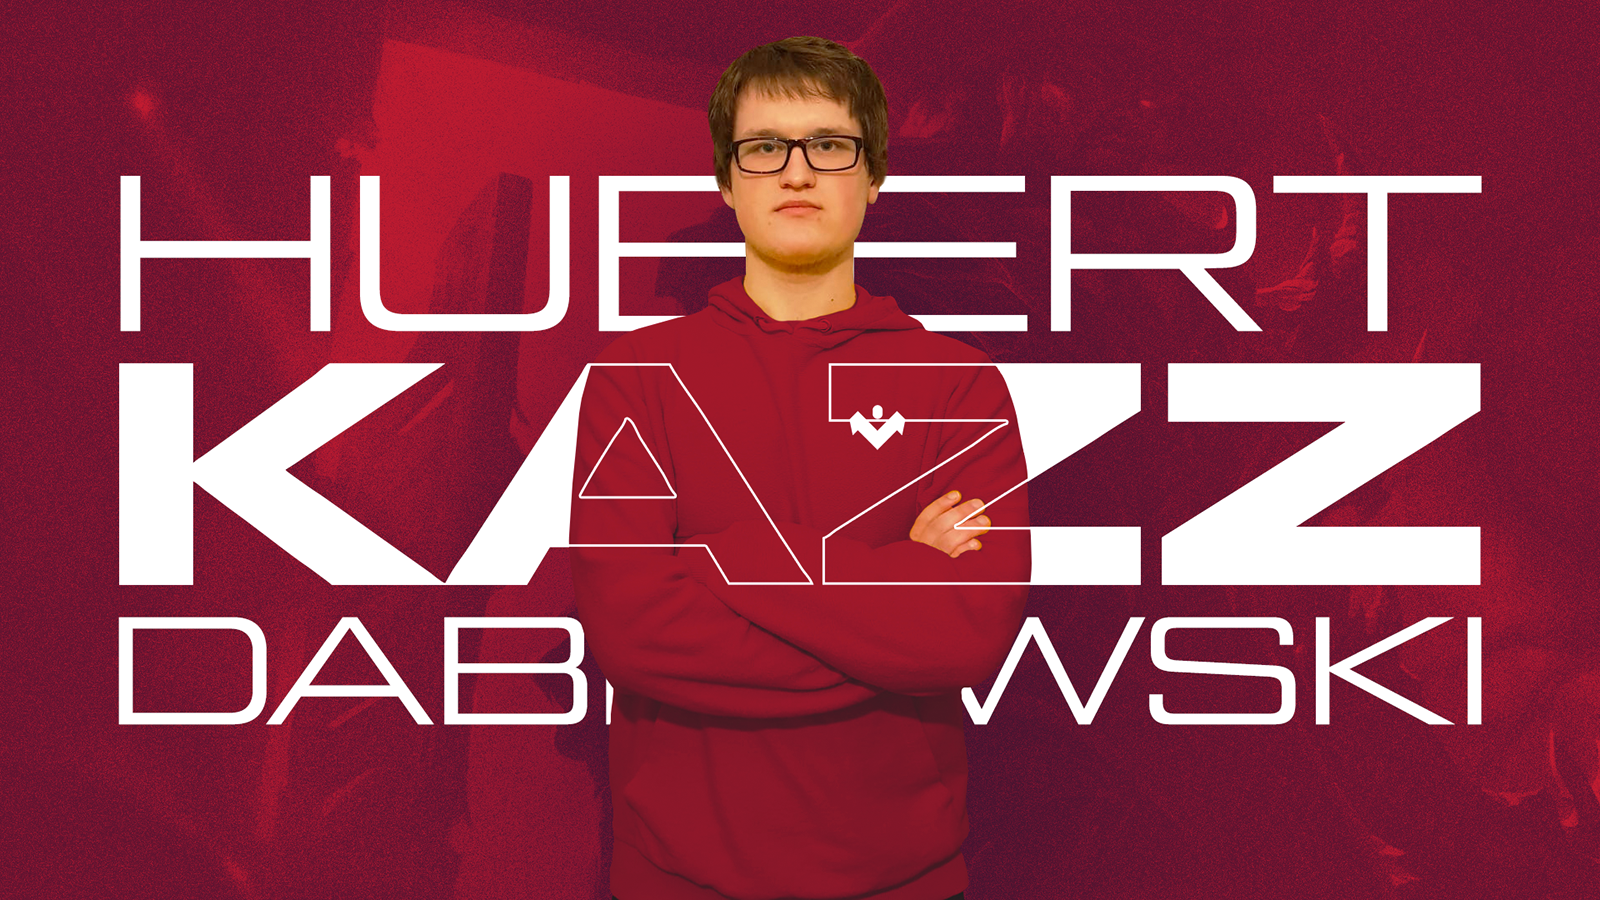 Kazz named Viperio's starting ADC for Spring 2021